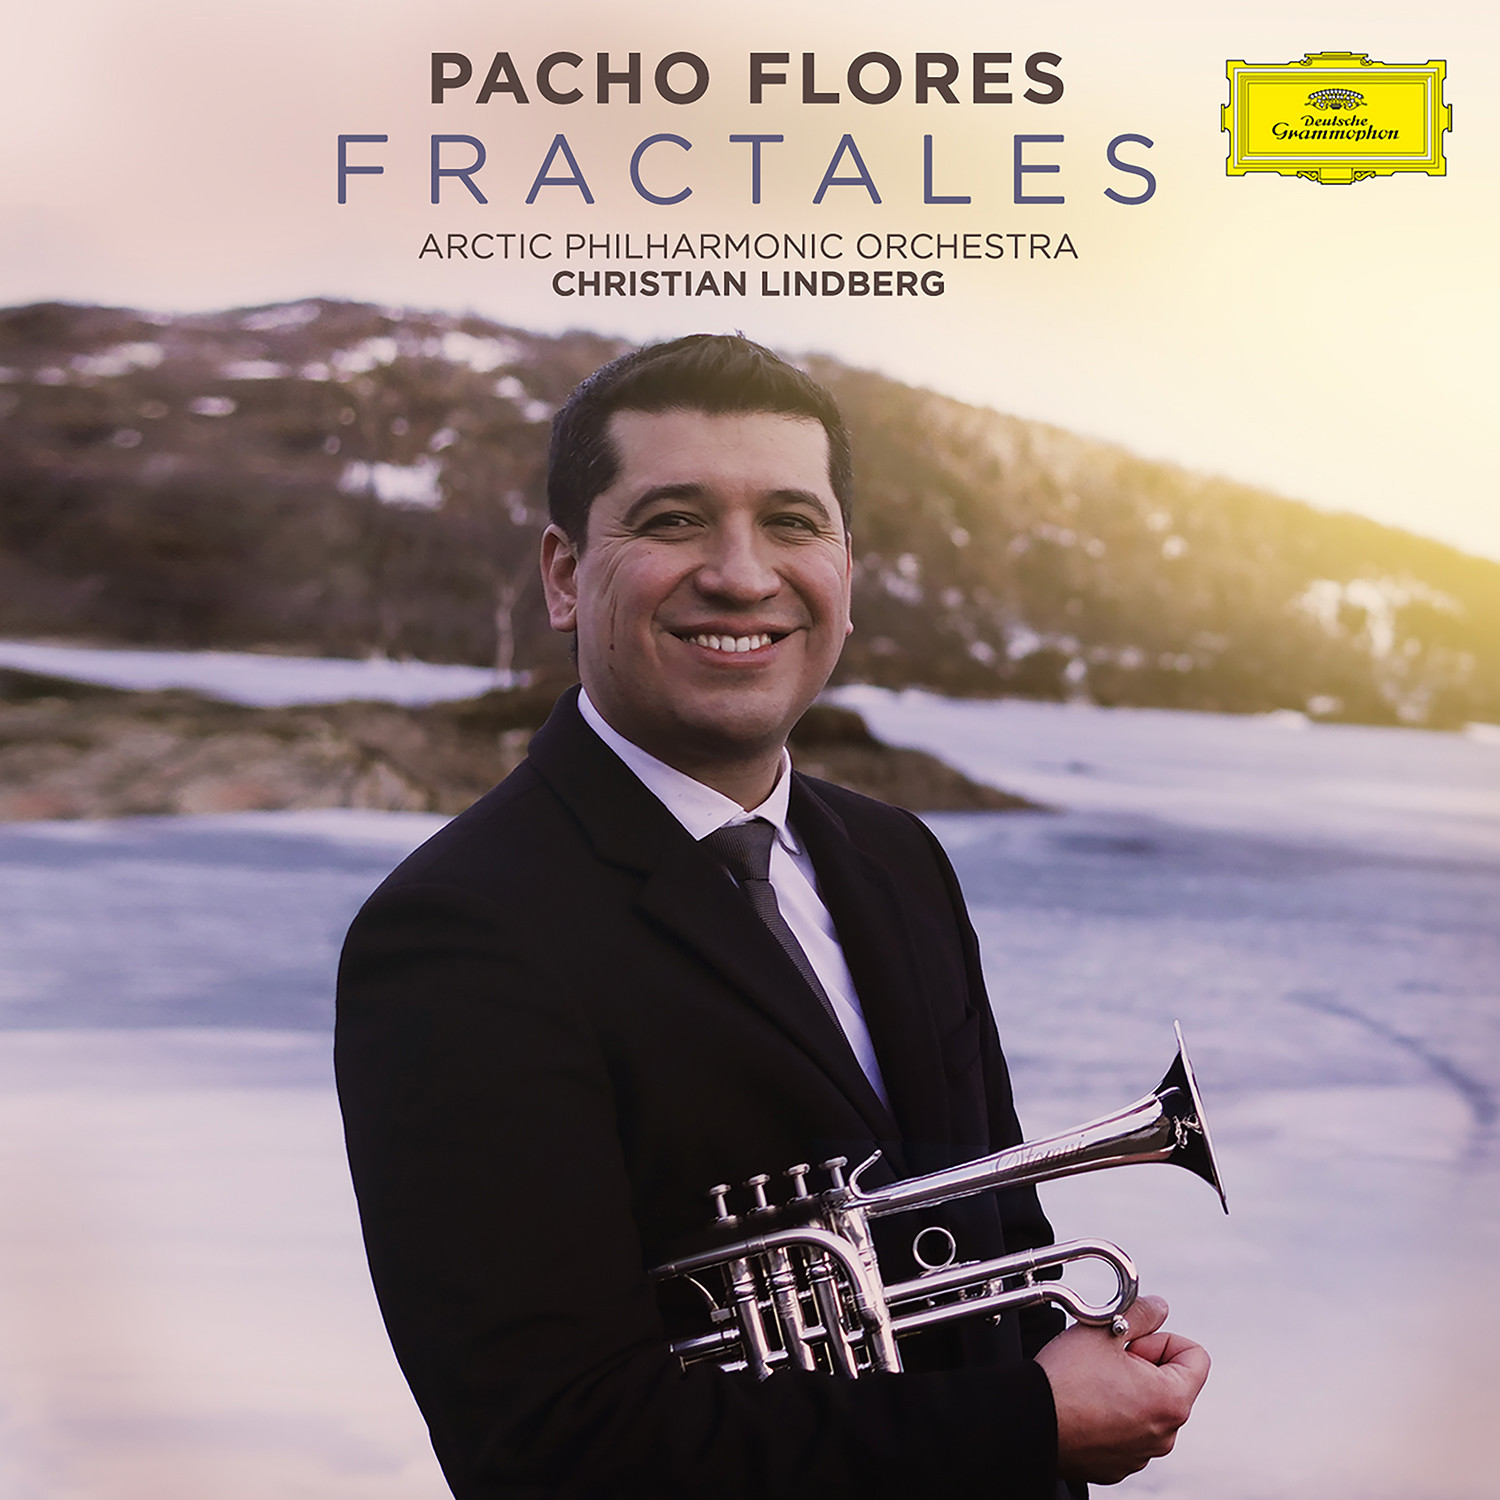 FRACTALES, new Pacho Flores' recording for DG